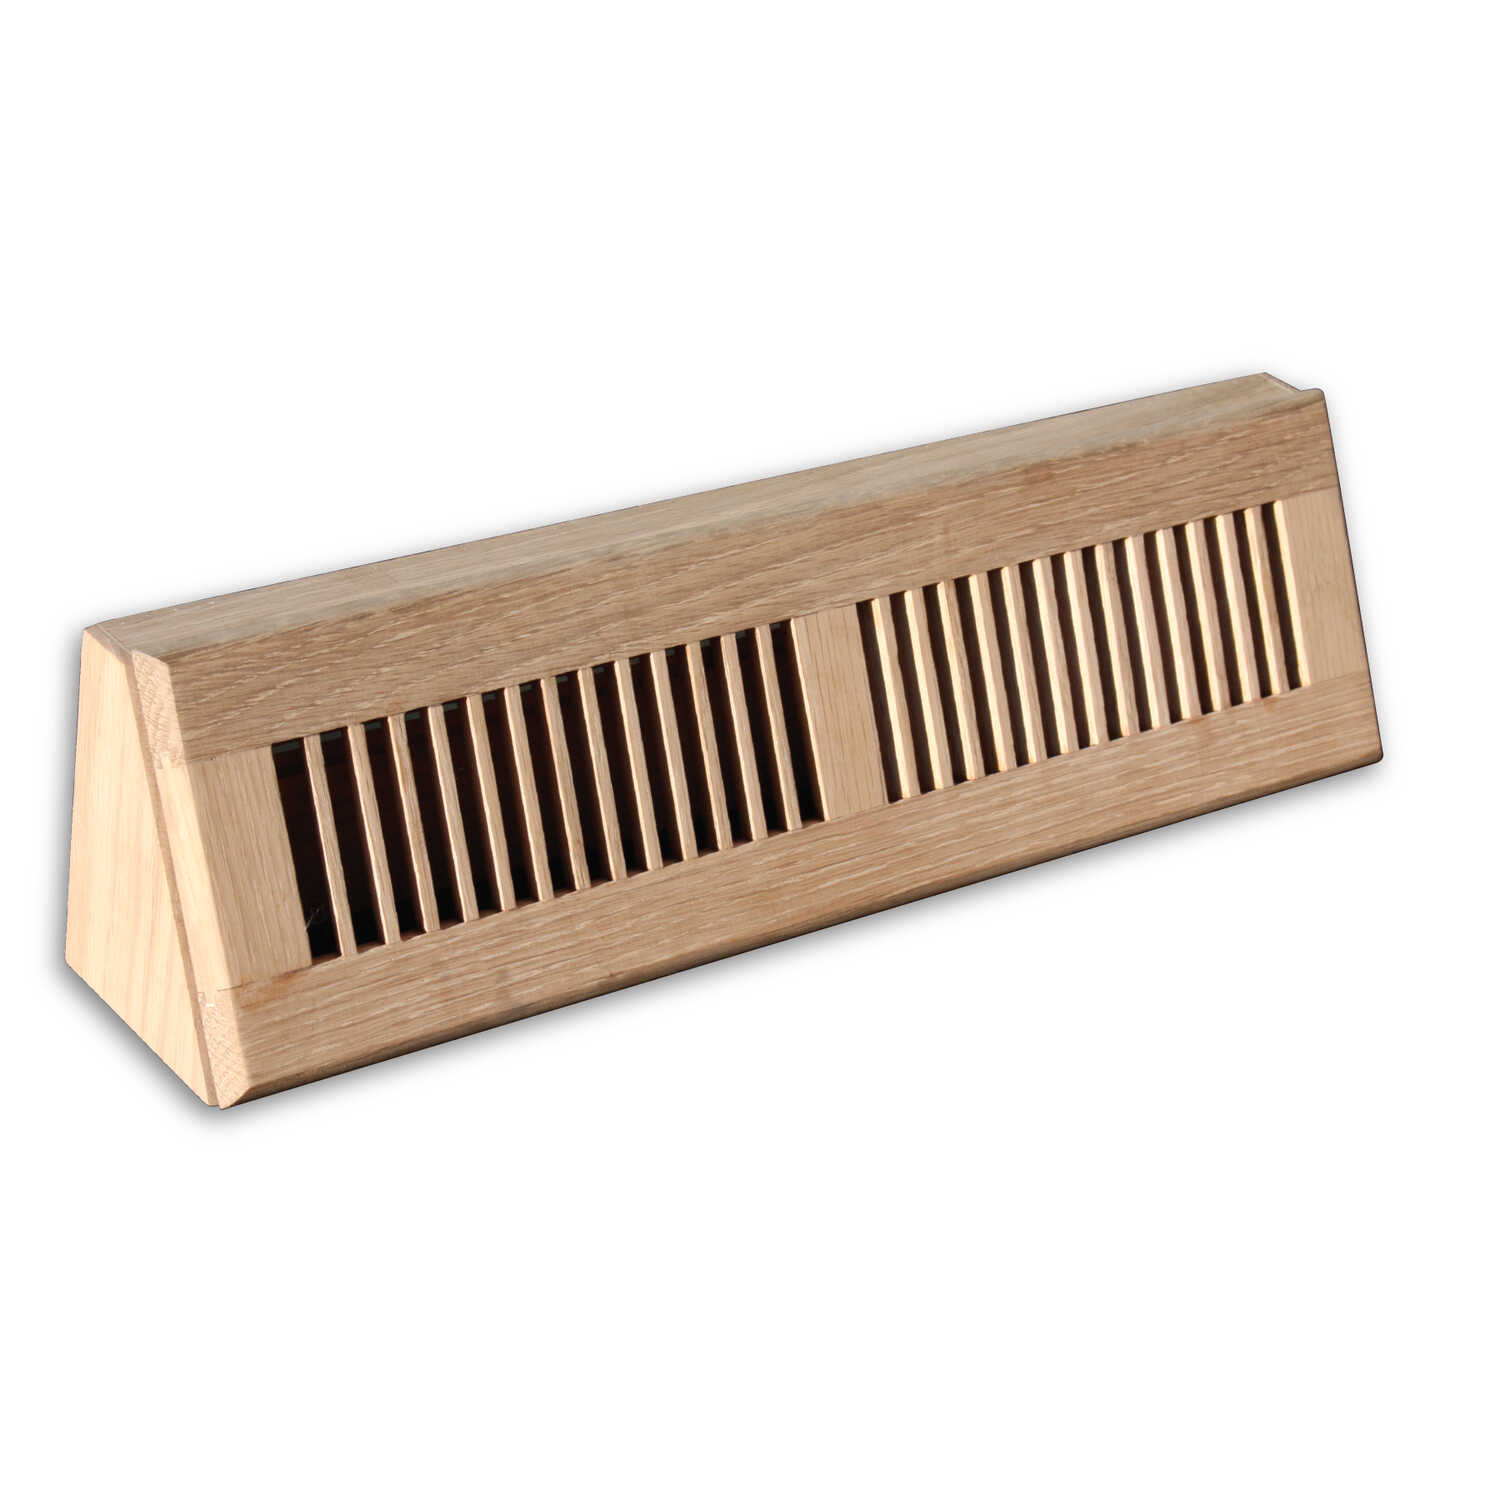 Tru Aire  4 in. H x 3-1/16 in. D 2-Way  Oak  Wood  Baseboard Diffuser